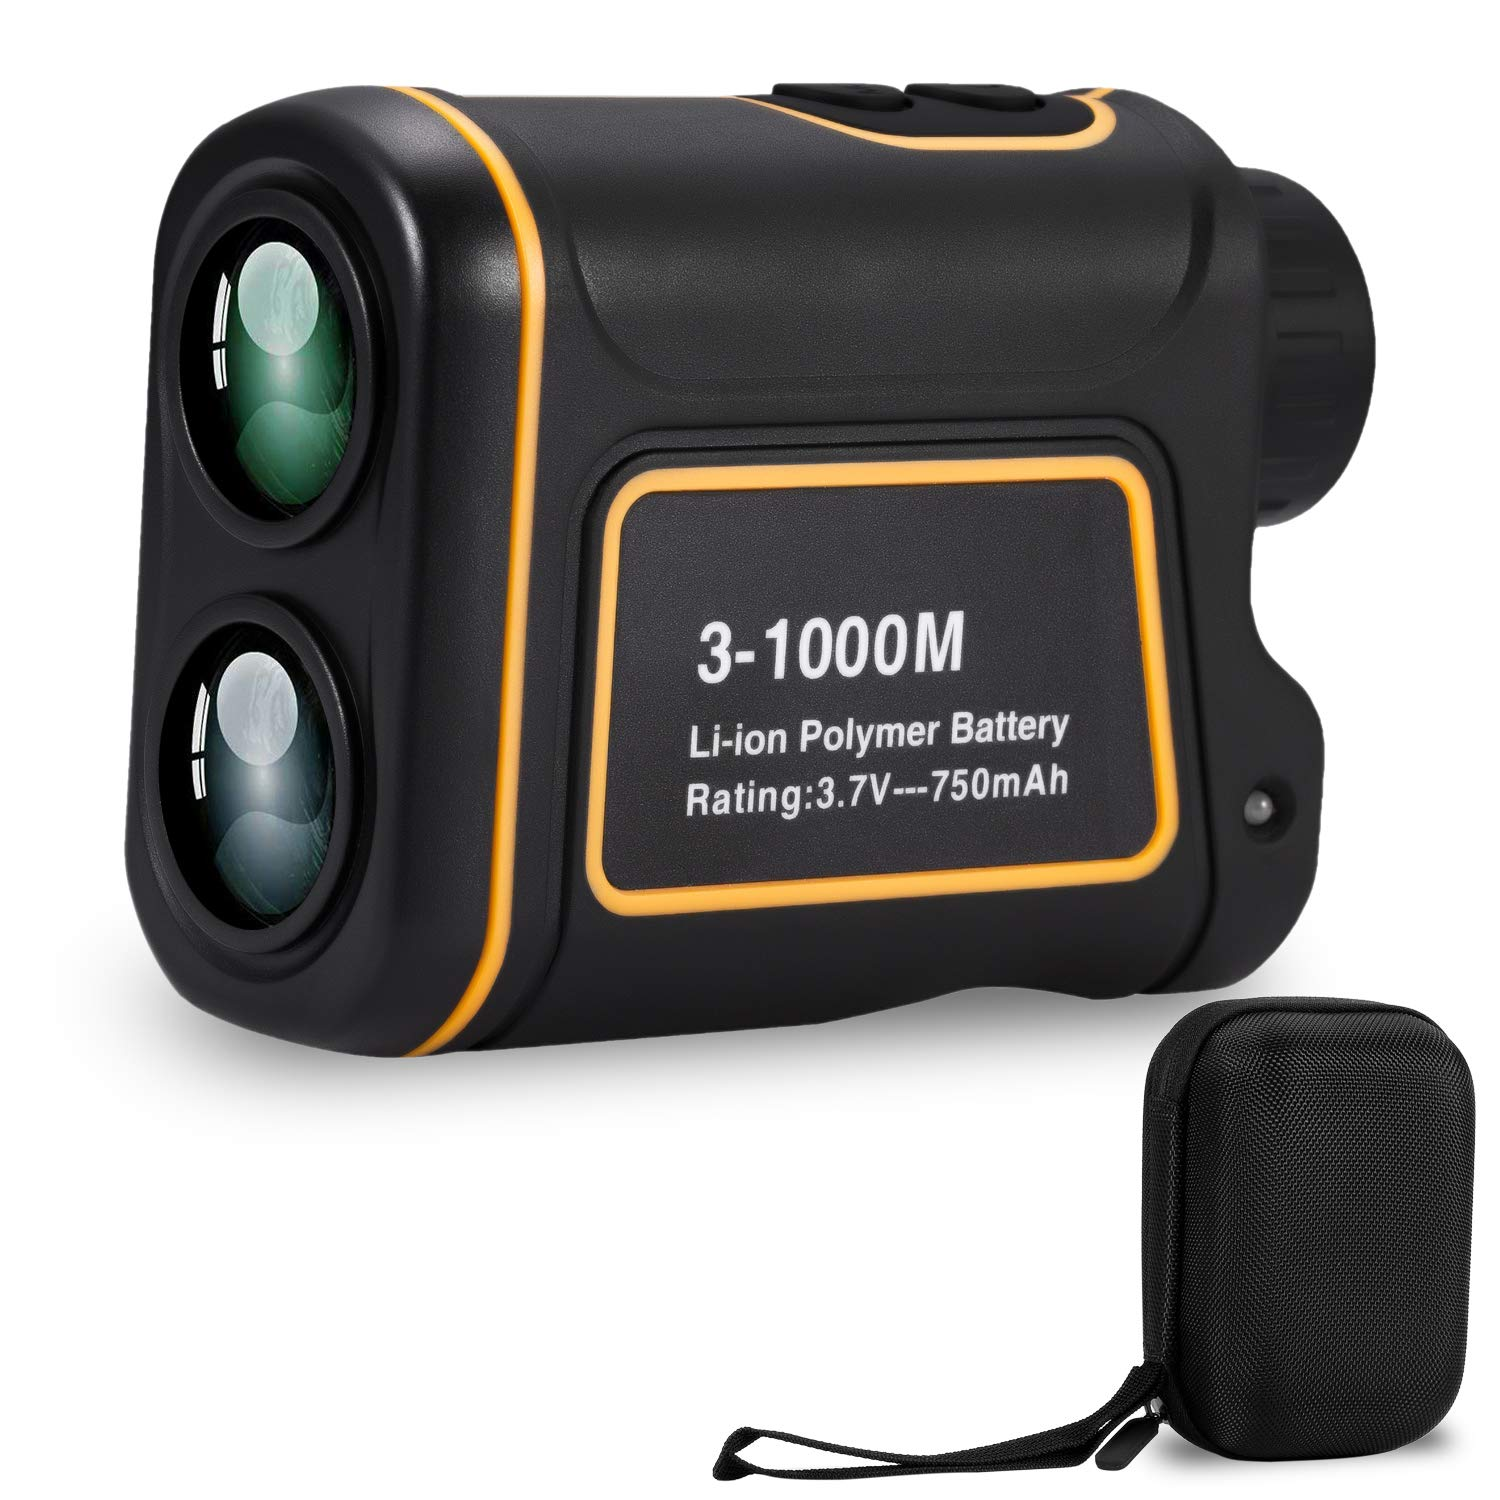 Deeteck Compact Laser Rangefinder for Golf,6X Rechargeable Golf Hunting Range Finder,1000 Yards Accurate Distance Finder with FMC Optics Clear View,Support Scan,Speed,Angle,Flag Lock,Vertical by Deeteck